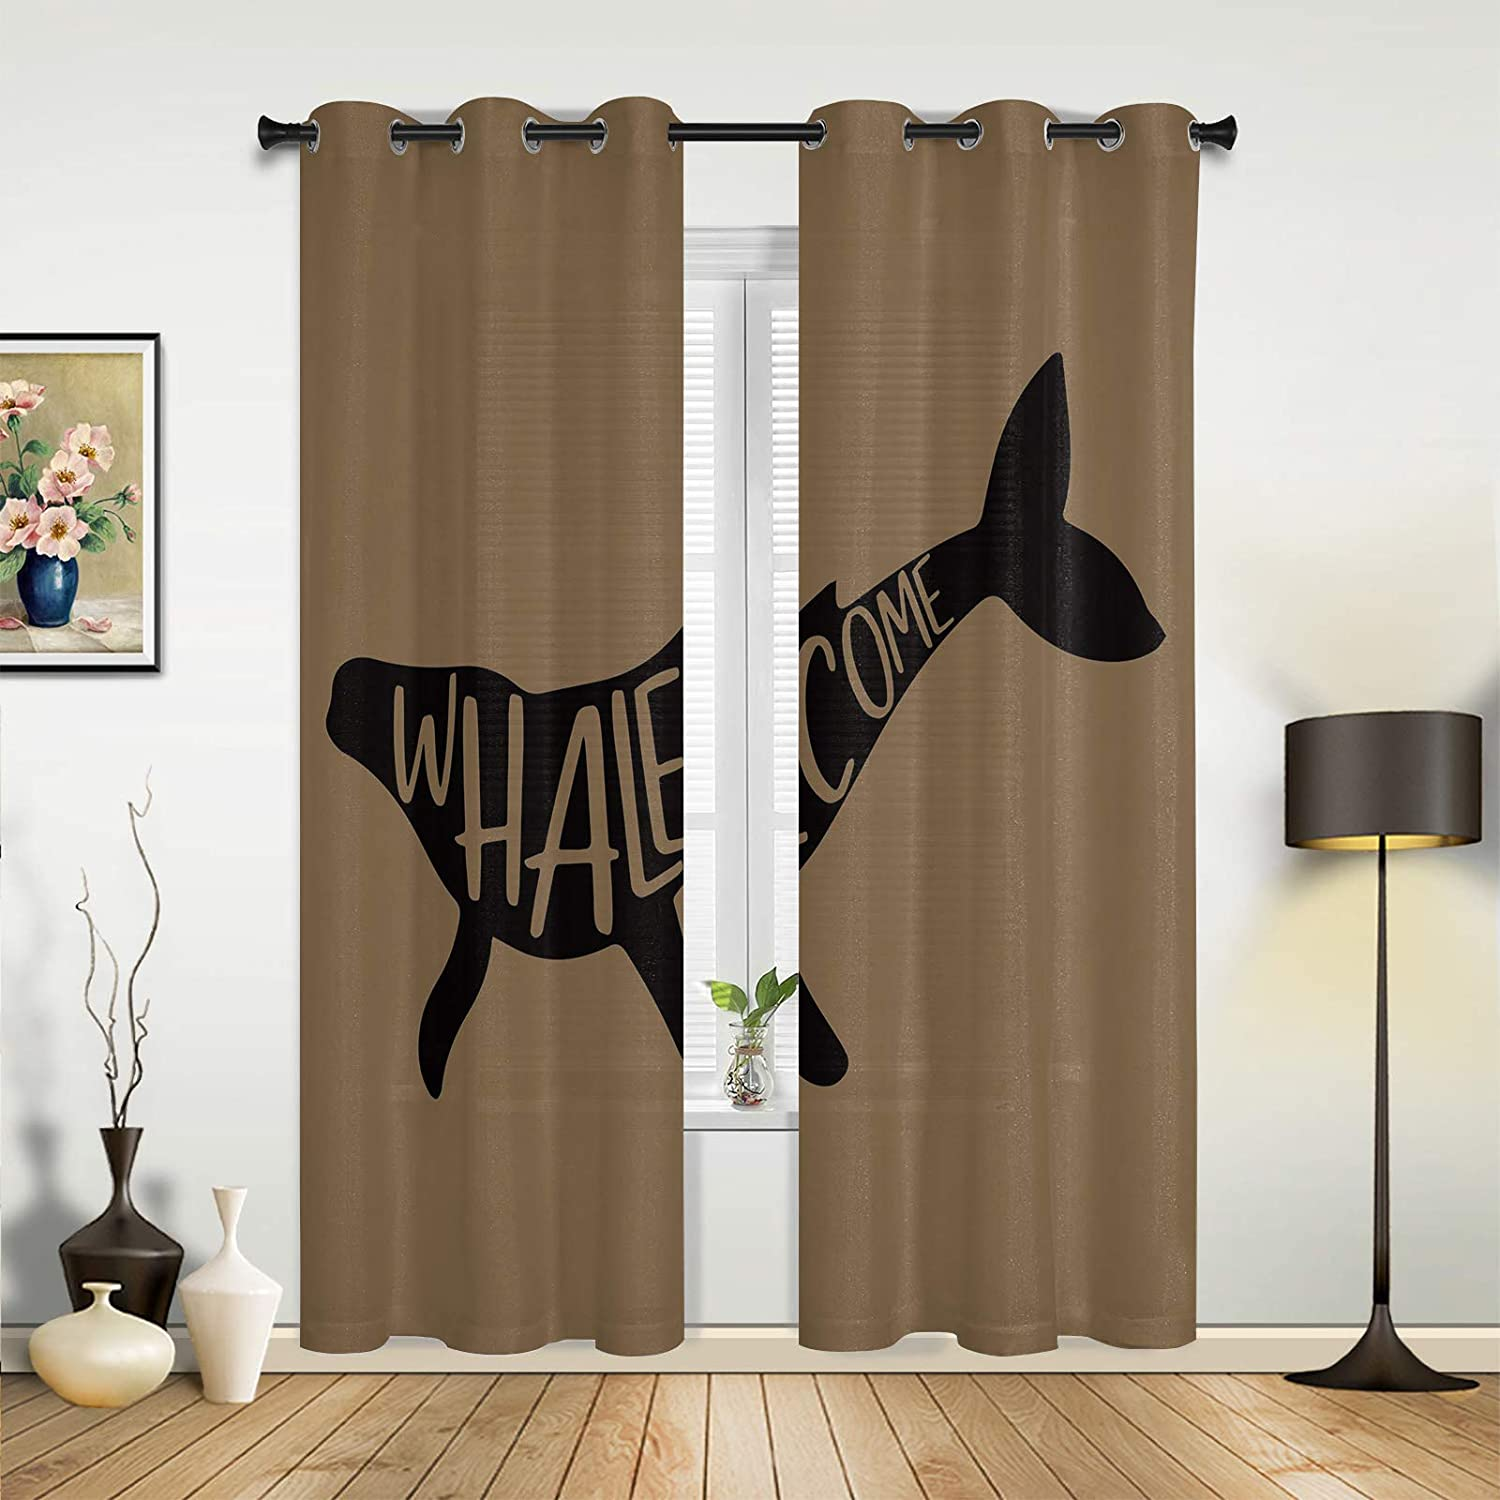 Window Sheer Curtains for Bedroom Living Bargain sale safety Room Minimali Whalecome